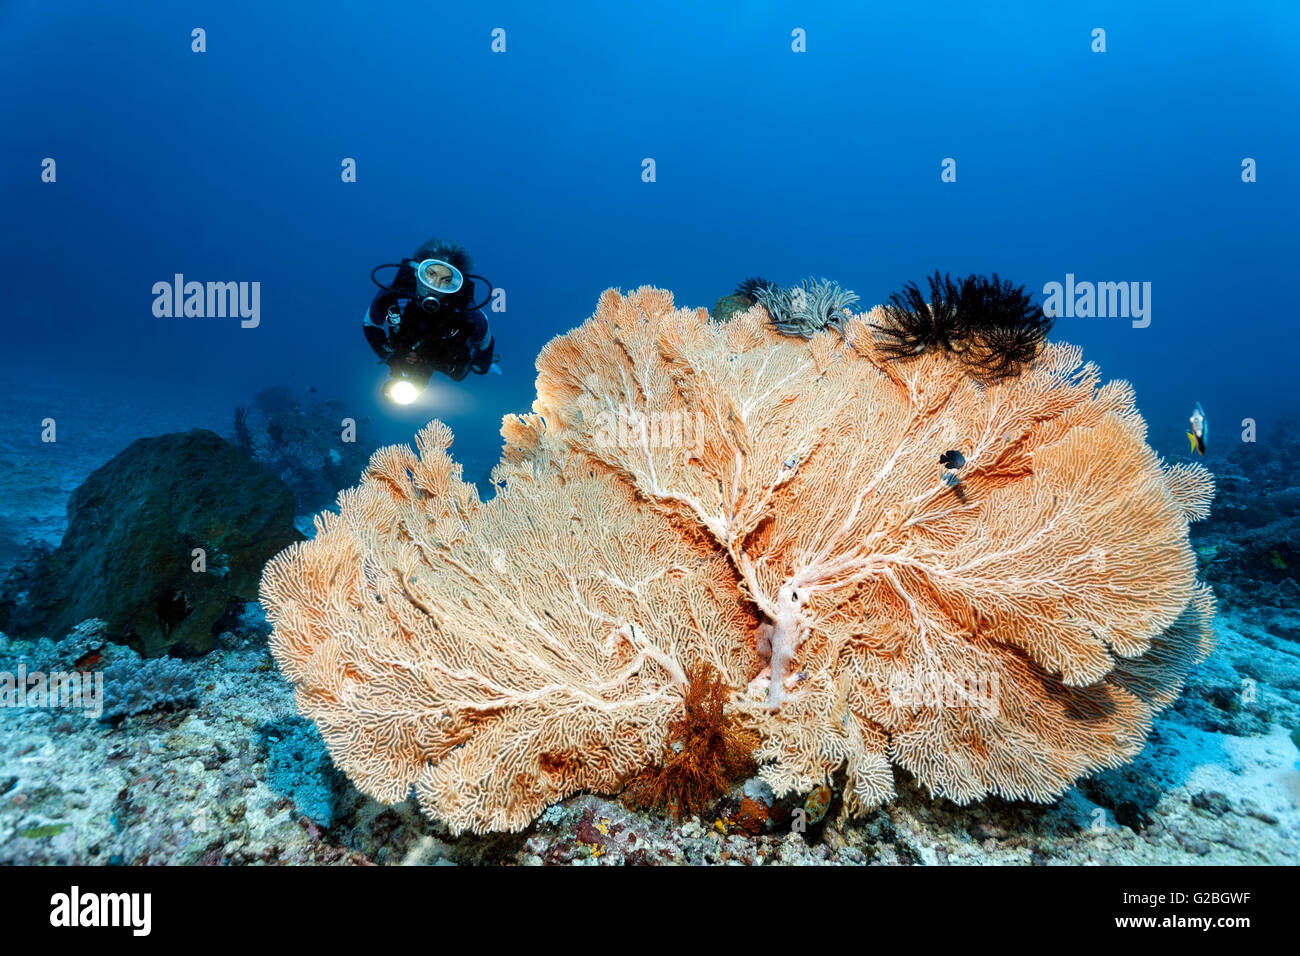 Diver and Giant Sea Fan (Annella mollis), Great Barrier Reef, Queensland, Cairns, Pacific Ocean, Australia - Stock Image